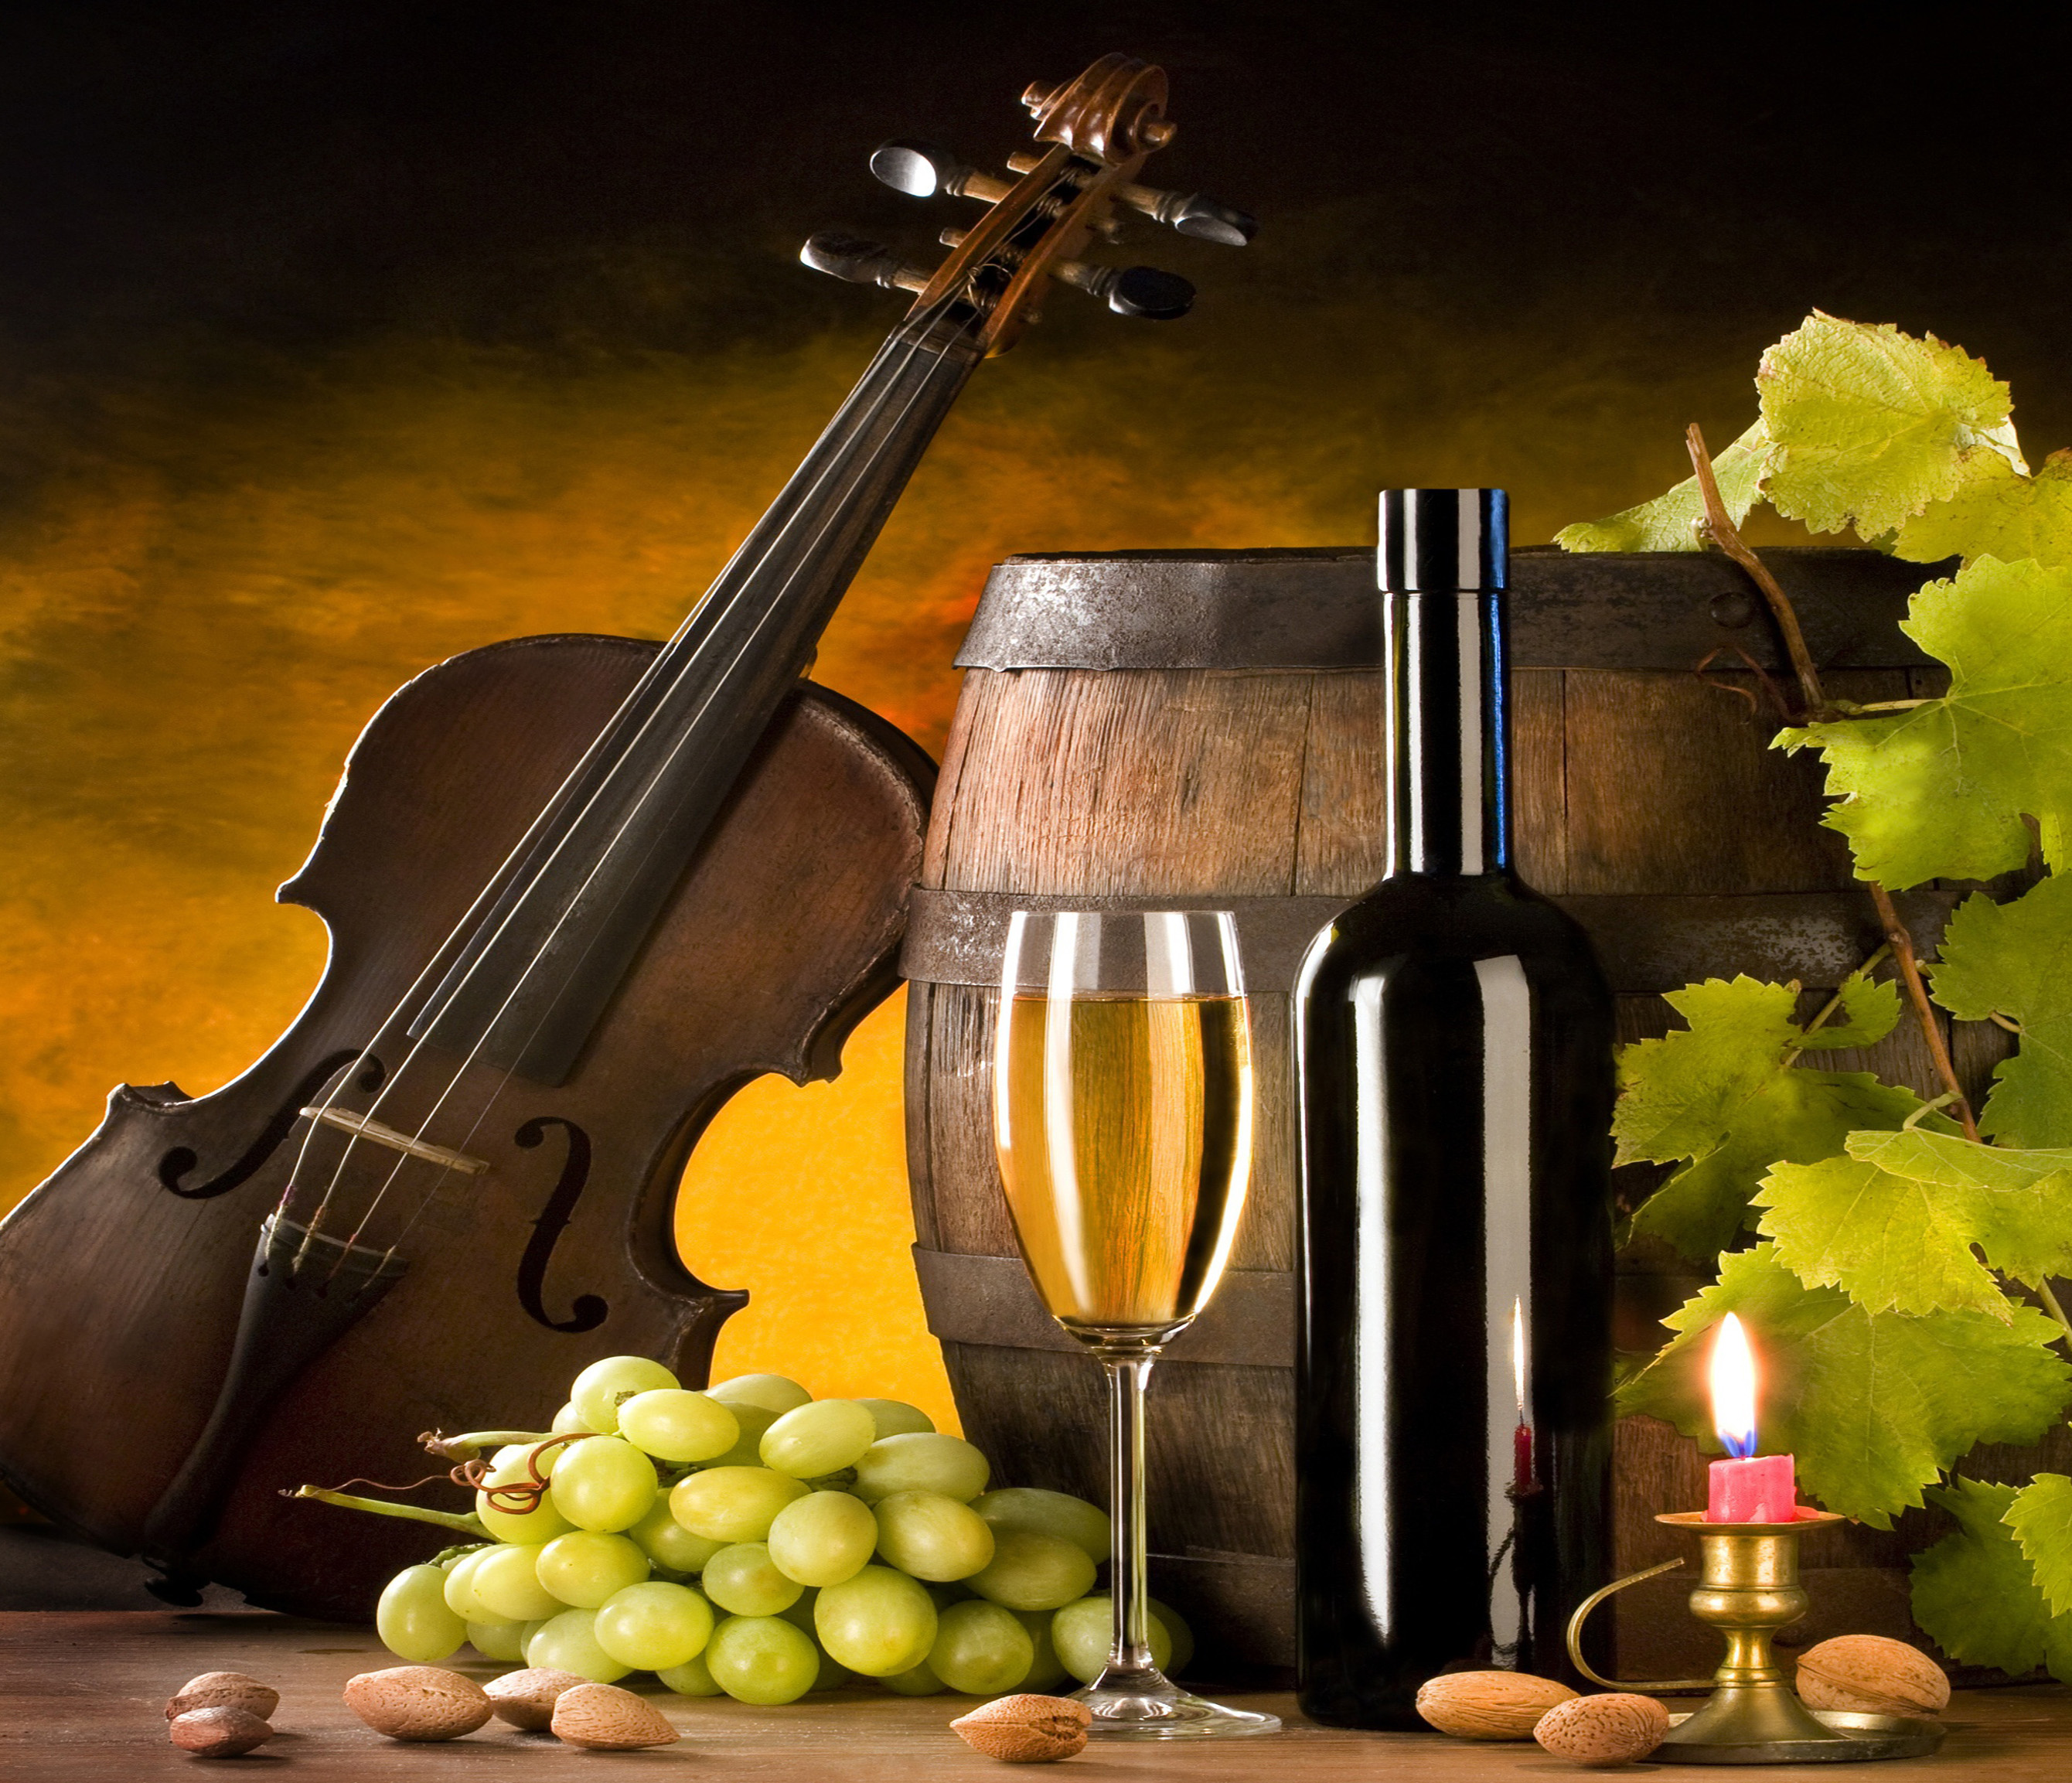 Wine, barrel, beautiful, beauty, bottle, candle, candles, glass Wallpaper